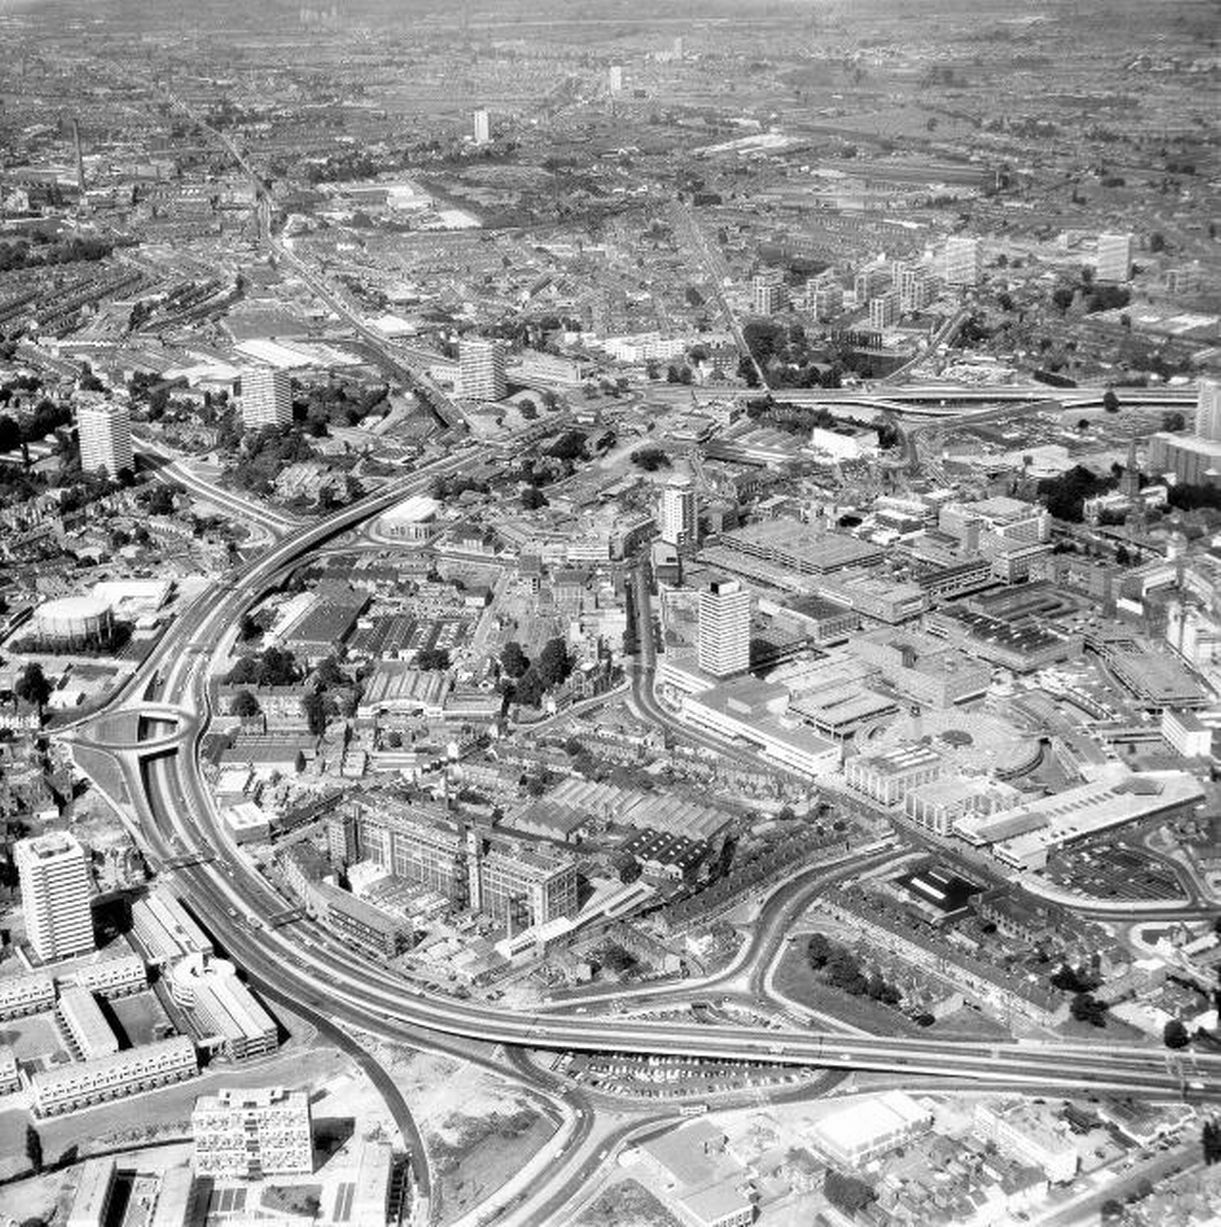 Coventry's ring road in June 1970